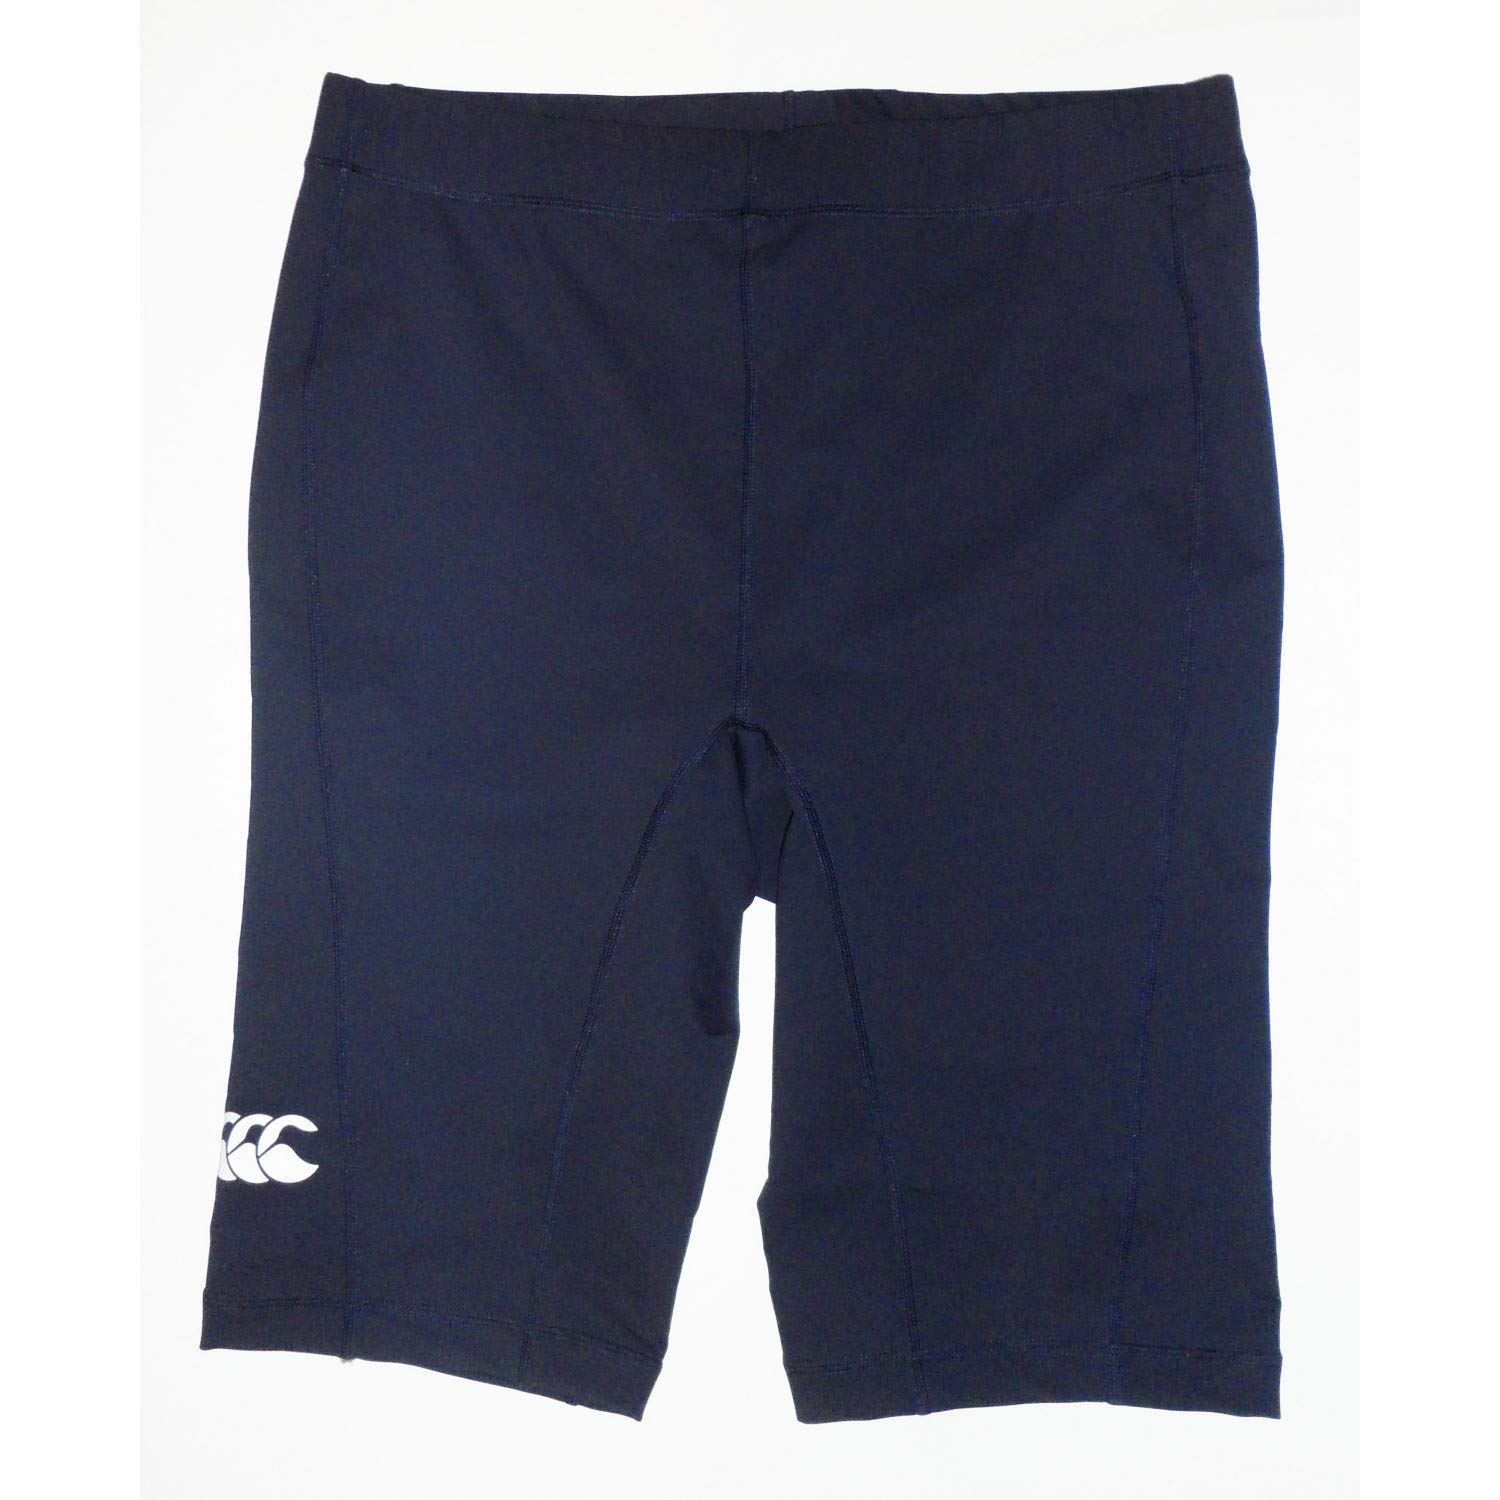 Canterbury Ccc Skin Tight Shortsアダルトネイビー B01DLH0OP4